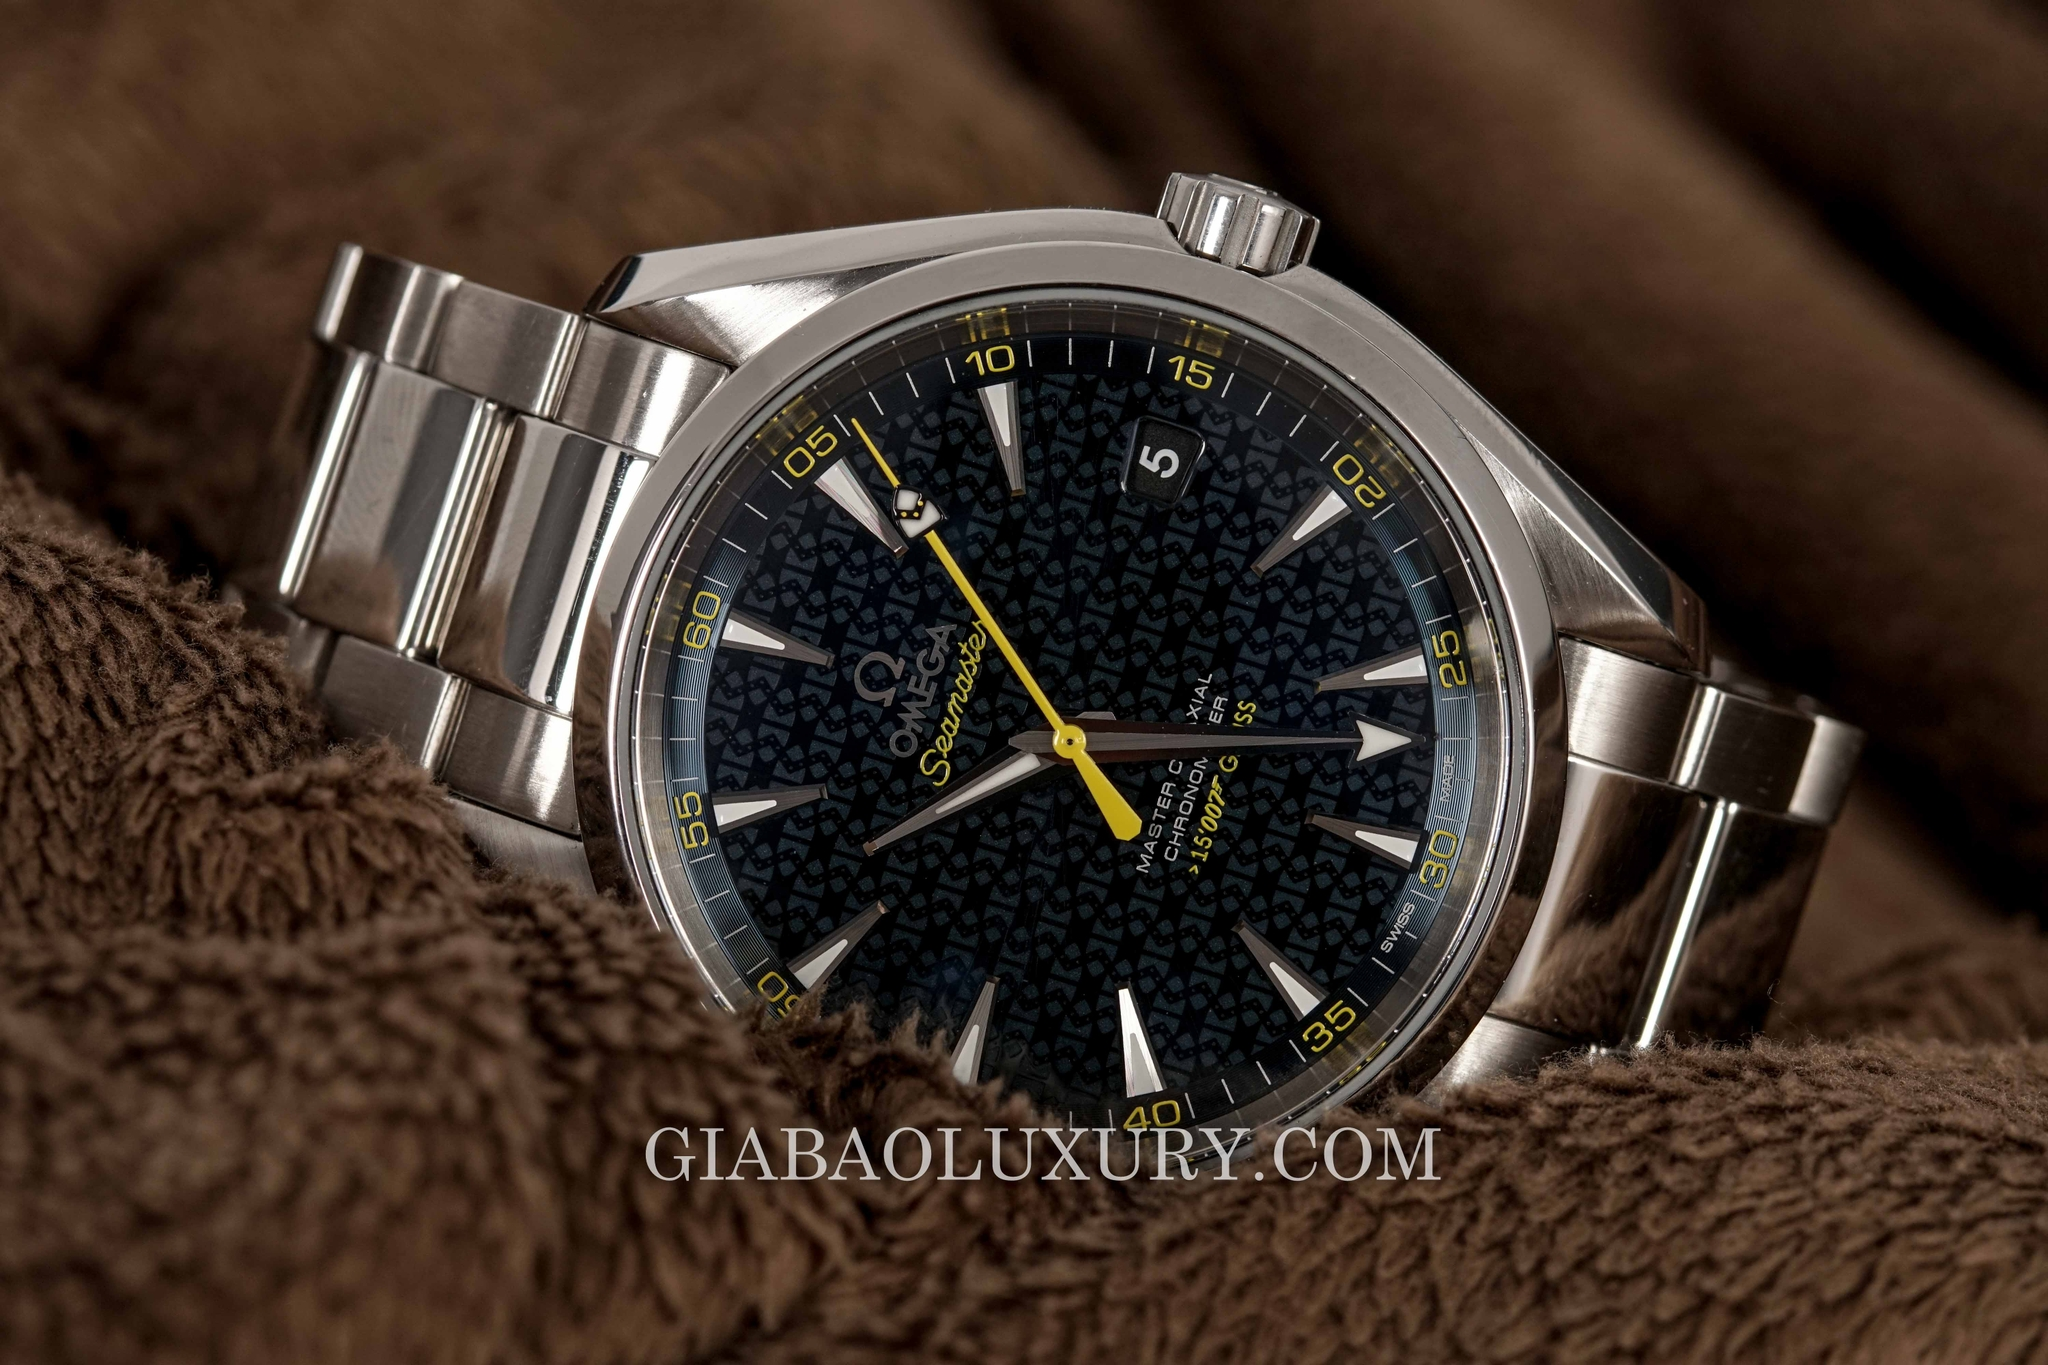 Đồng Hồ Omega Seamaster James Bond Limited Edition Aqua Terra 231.10.42.21.03.004